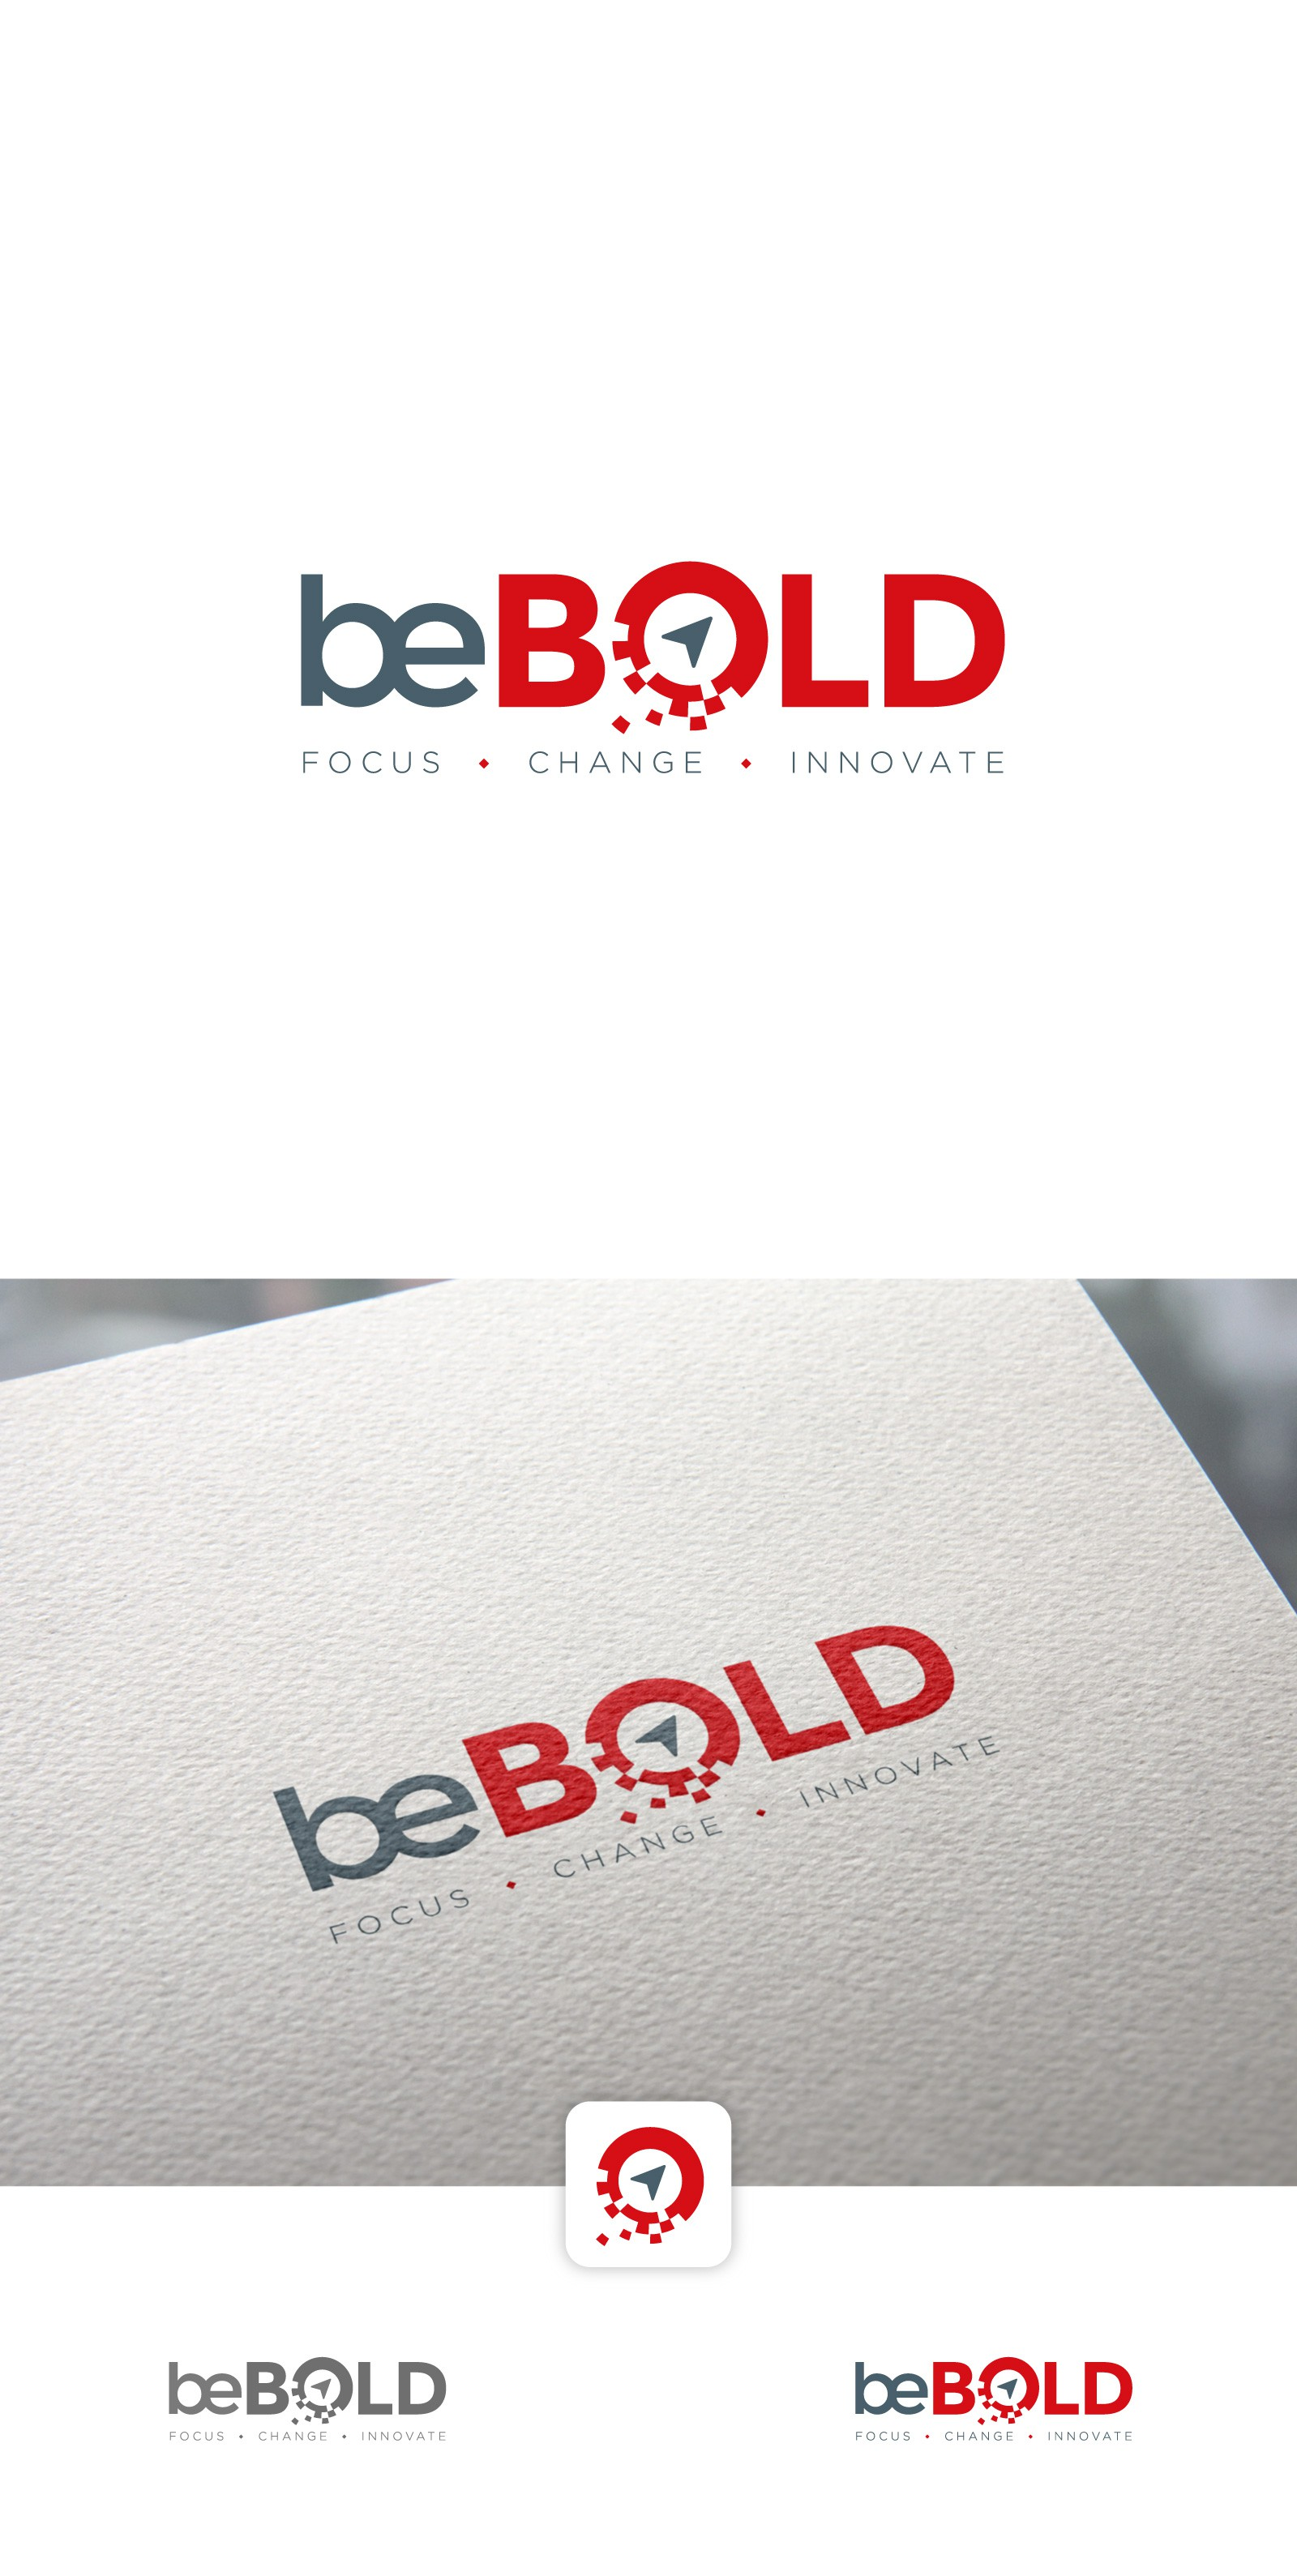 Create a bold logo for a digital consulting company